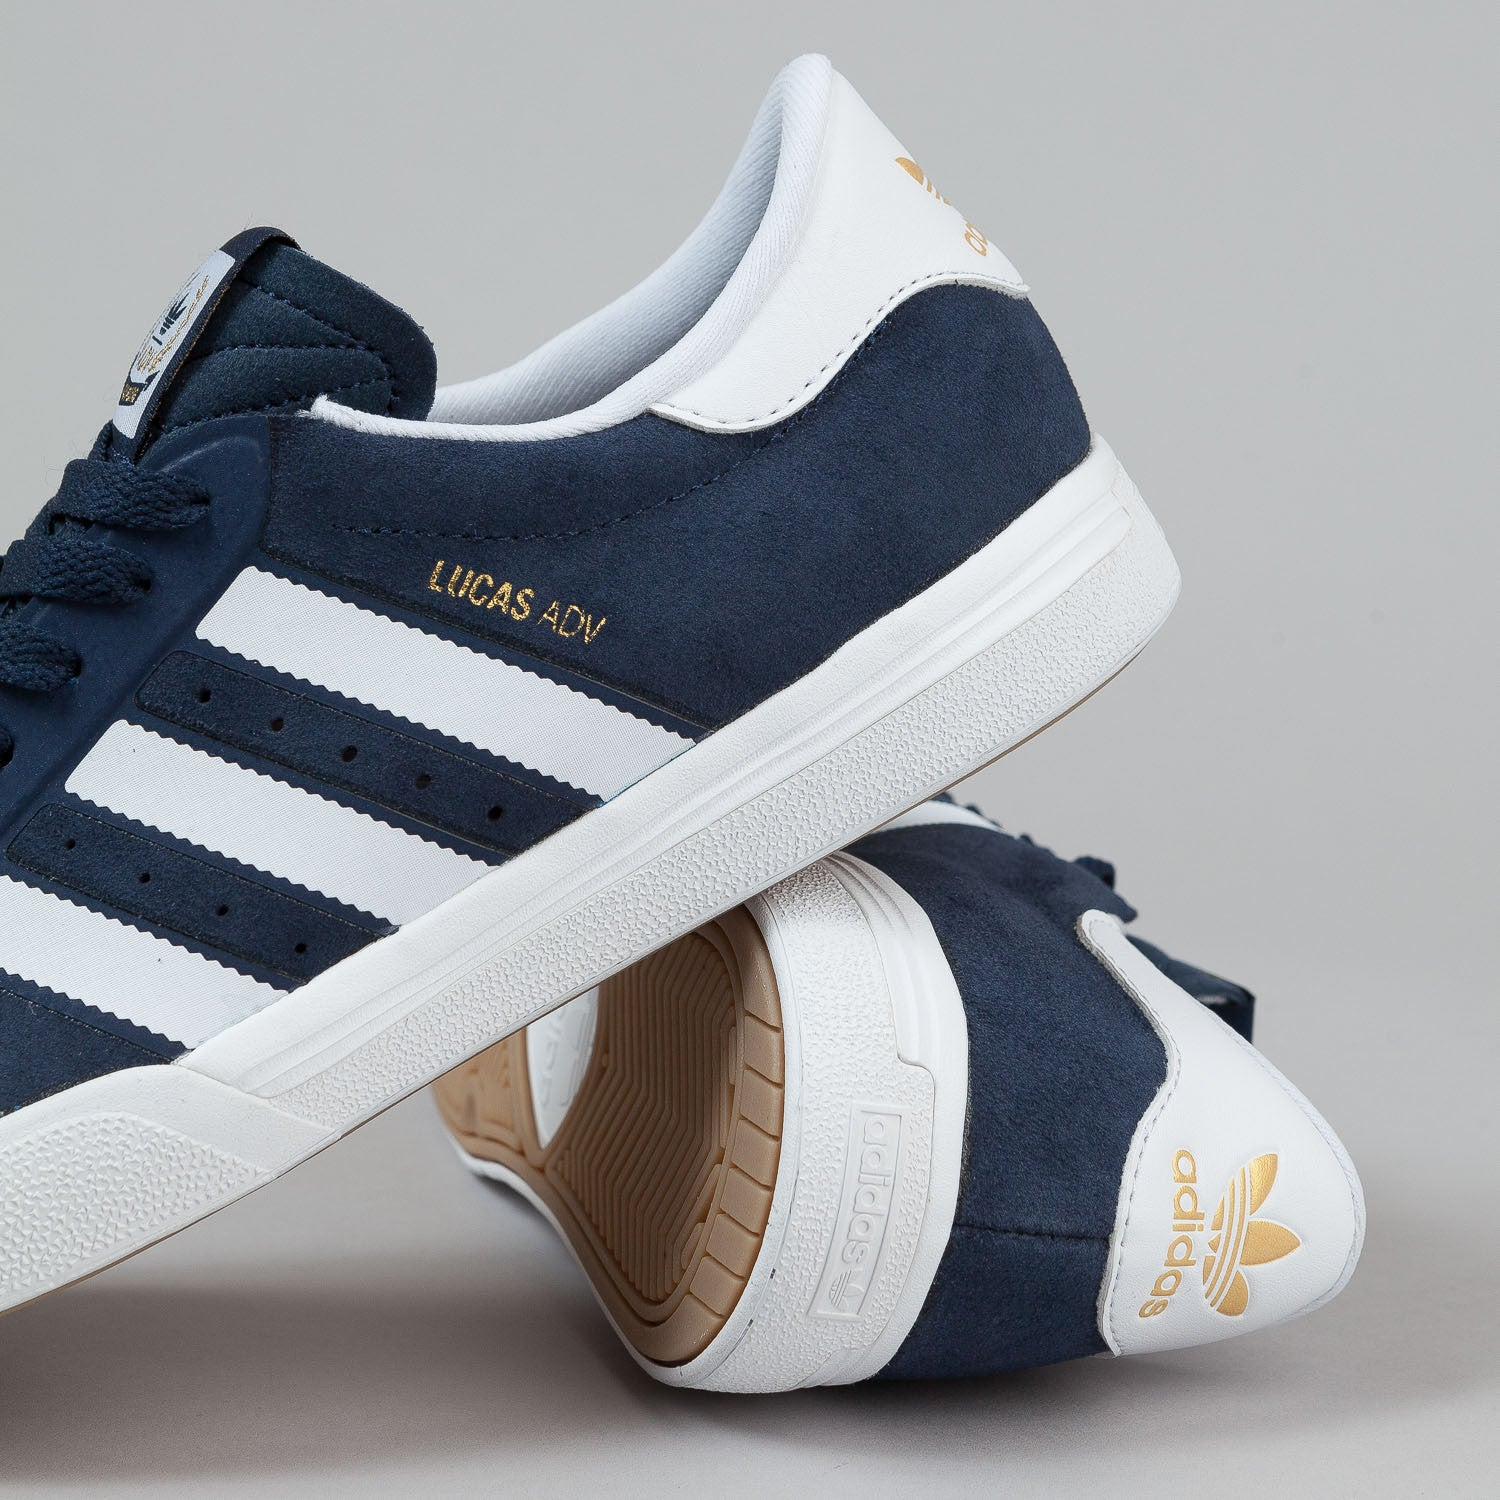 Adidas Lucas ADV Shoes - Navy / White / Metallic Gold